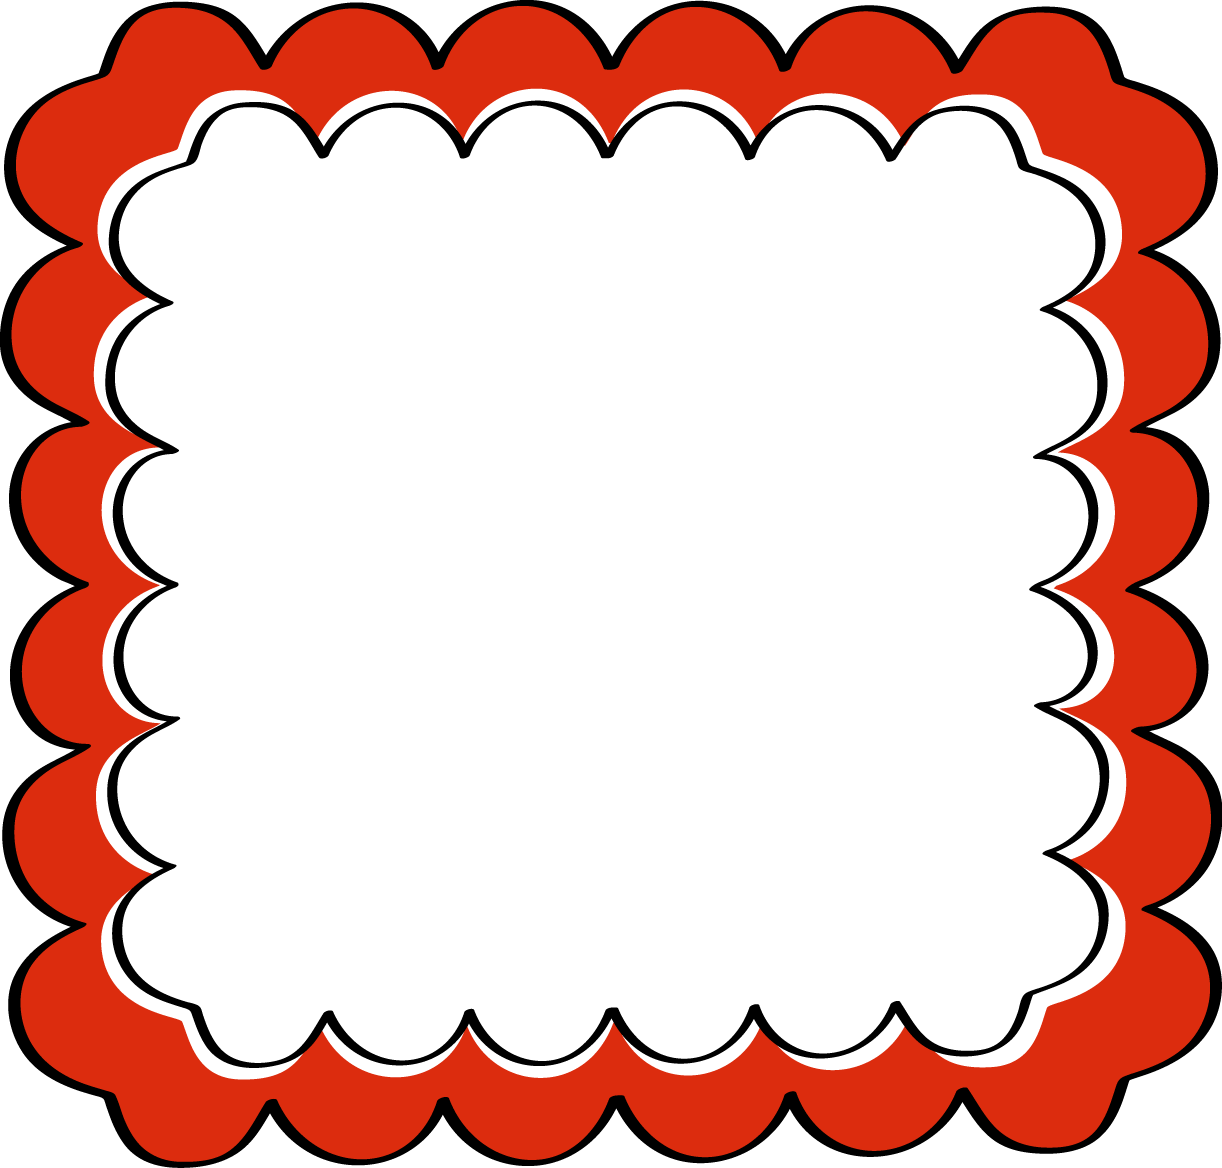 scrapbook frames and borders red scalloped frame free clip art rh pinterest com Label Border Clip Art Vintage Frame Clip Art